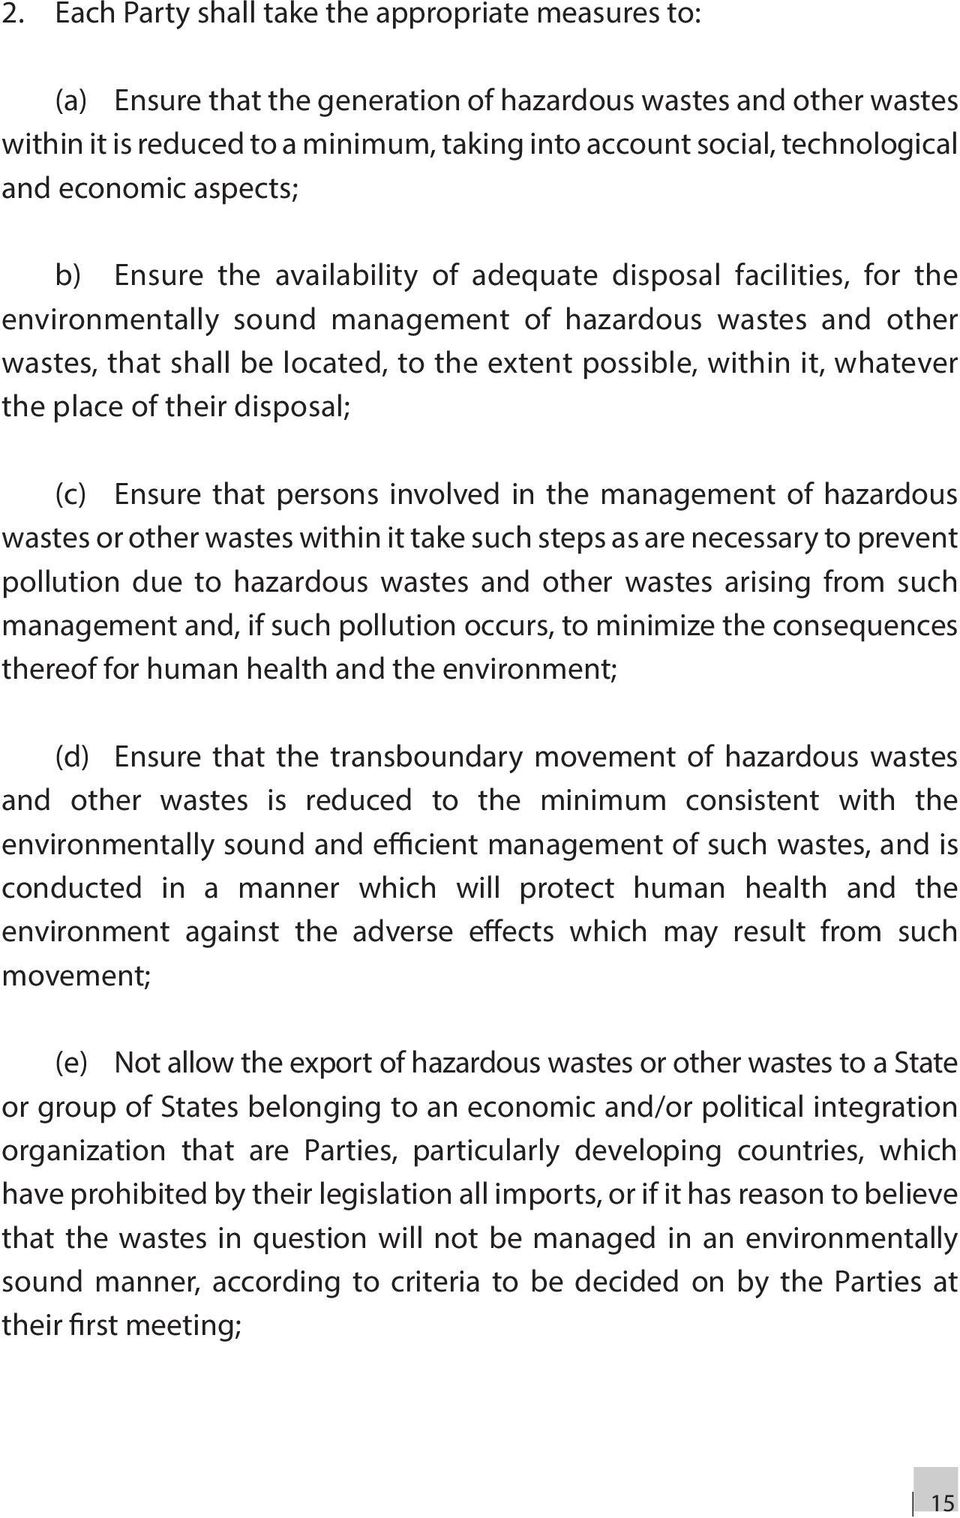 possible, within it, whatever the place of their disposal; (c) Ensure that persons involved in the management of hazardous wastes or other wastes within it take such steps as are necessary to prevent